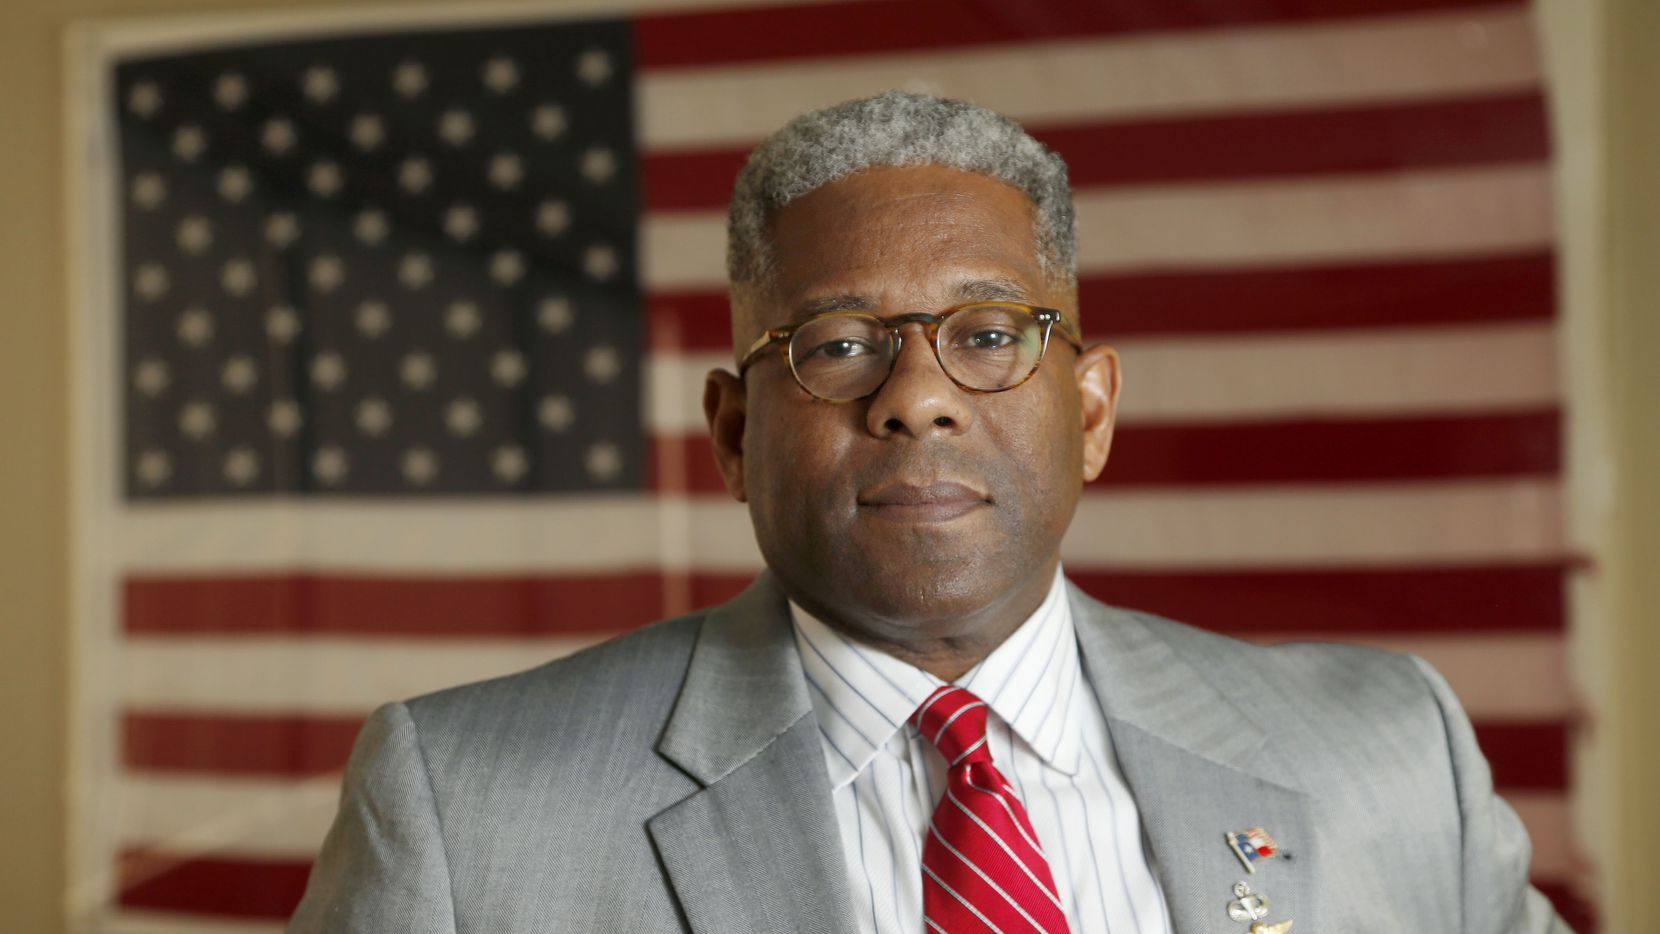 Allen West, the new CEO of the National Center for Policy Analysis at their offices in Dallas, on May 11, 2015. (Michael Ainsworth/The Dallas Morning News)